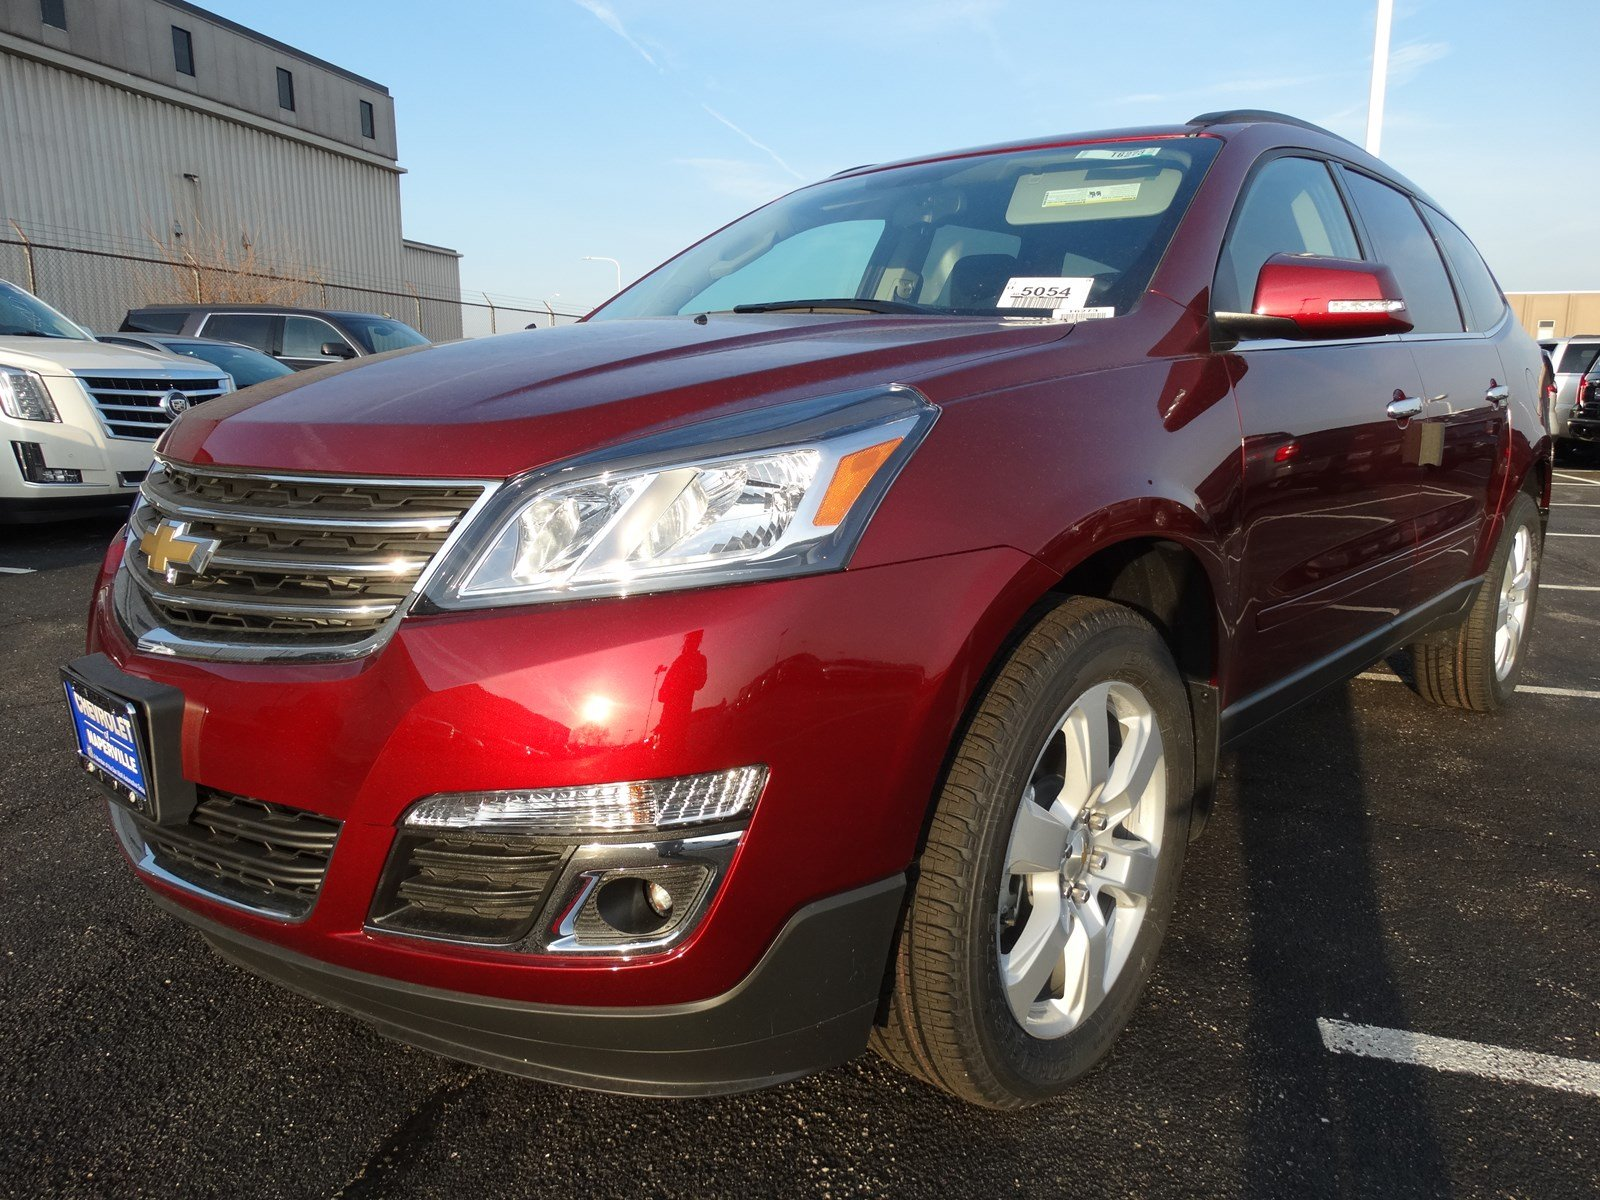 New 2017 Chevrolet Traverse LT Sport Utility in Naperville #T6273 Chevrolet of Naperville